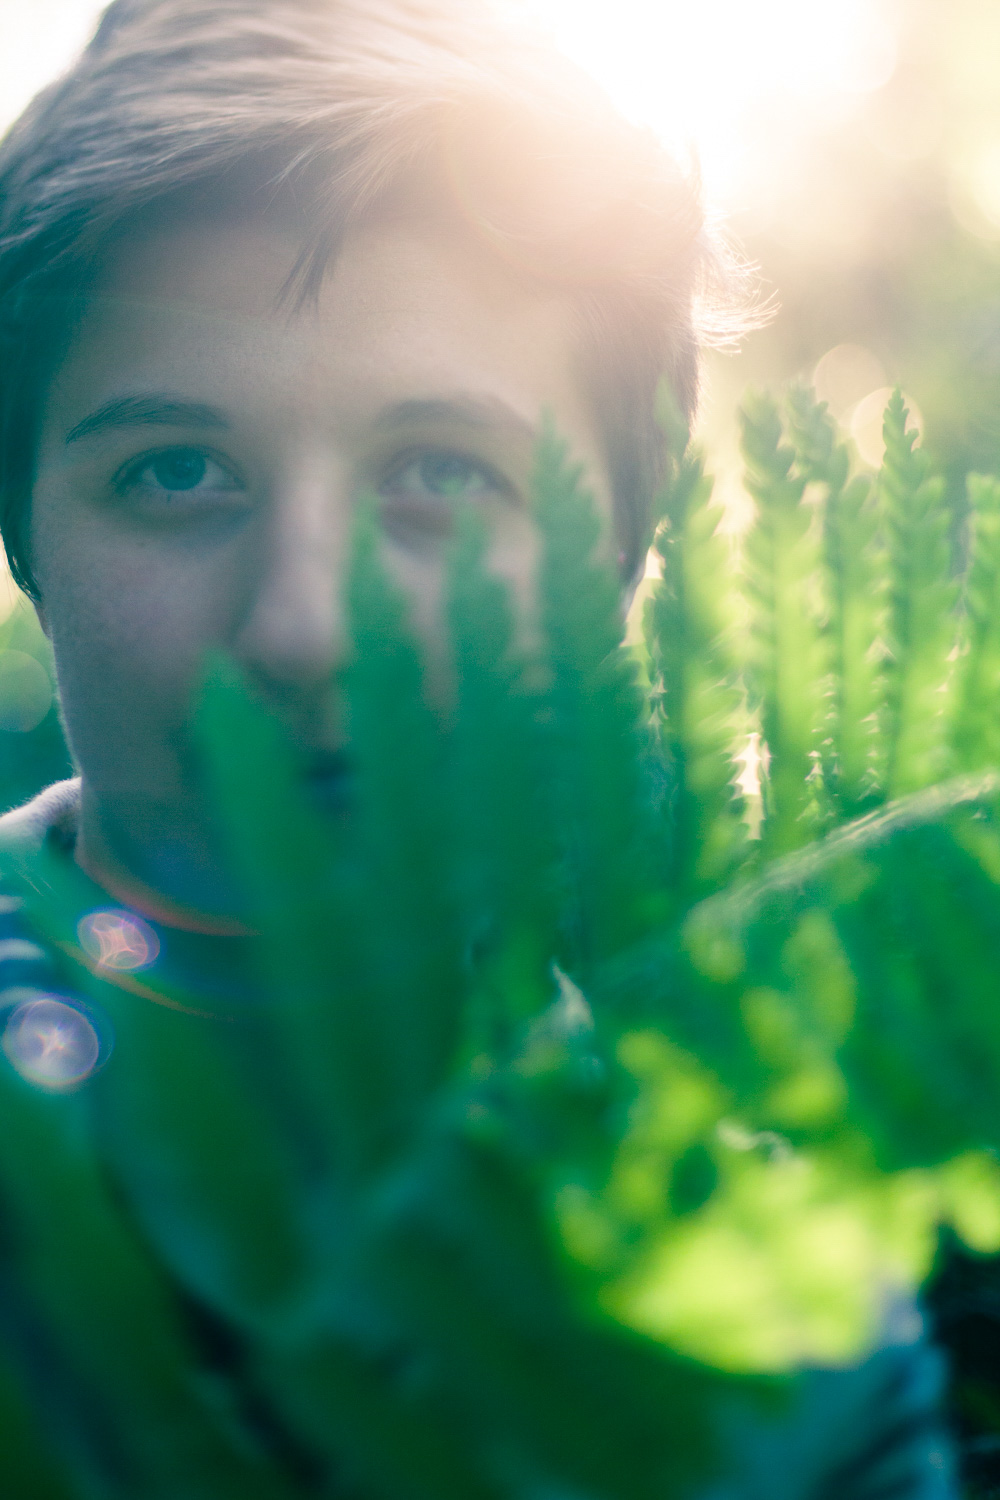 Portrait of a boy with backlighting and split toning applied